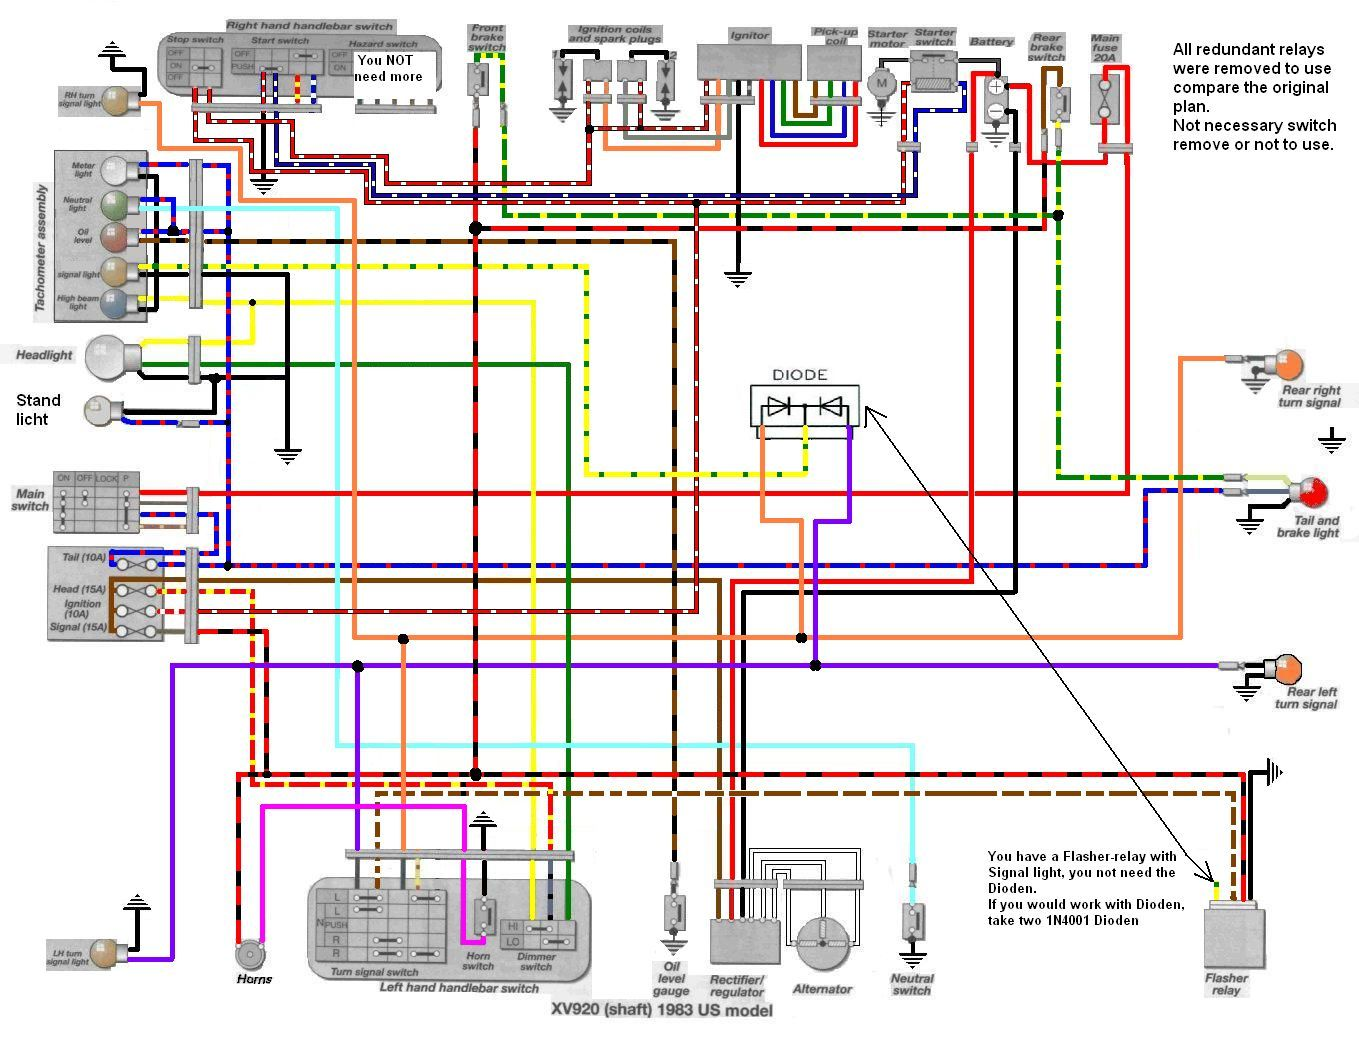 de5d52e2409fec2f5ef10f130e06771b tr1 xv1000 xv920 wiring diagrams manfred's tr1 page all about yamaha virago 750 wiring diagram at crackthecode.co